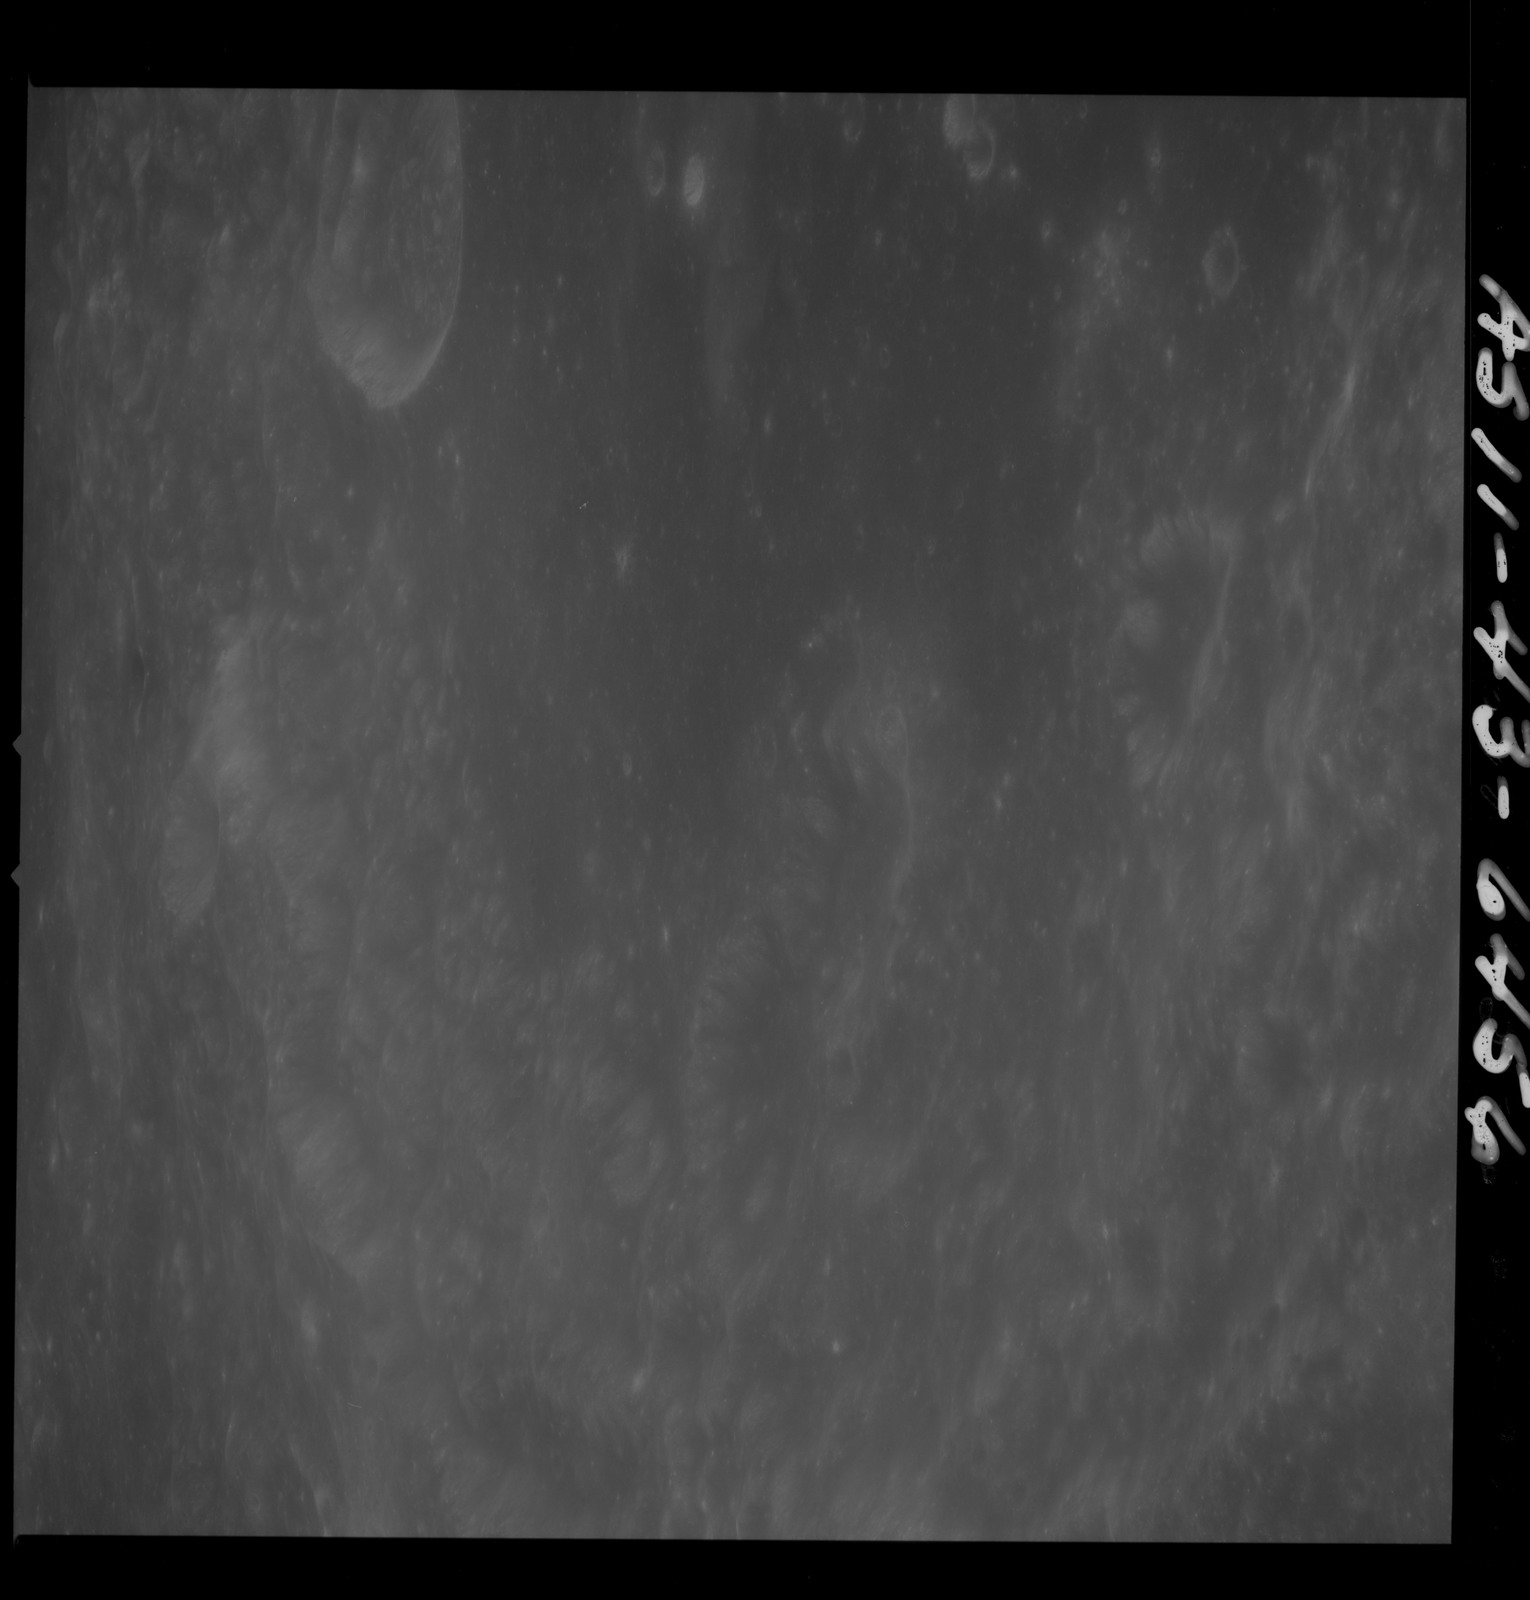 AS11-43-6456 - Apollo 11 - Apollo 11 Mission image - Moon, Crater Neper, Crater Neper G and Neper Q